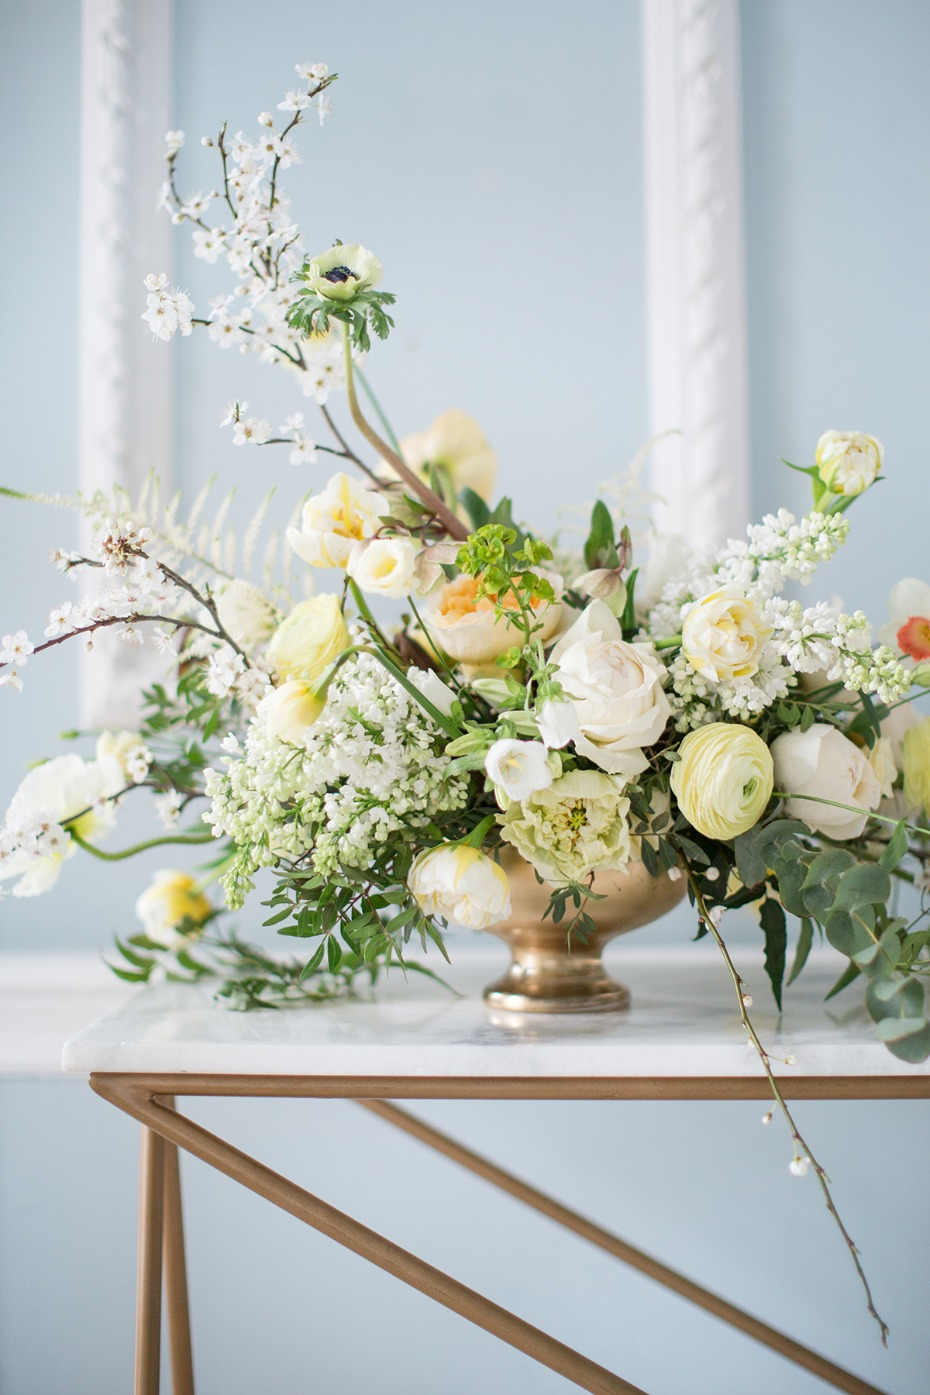 elegant white and yellow wedding floral arrangement